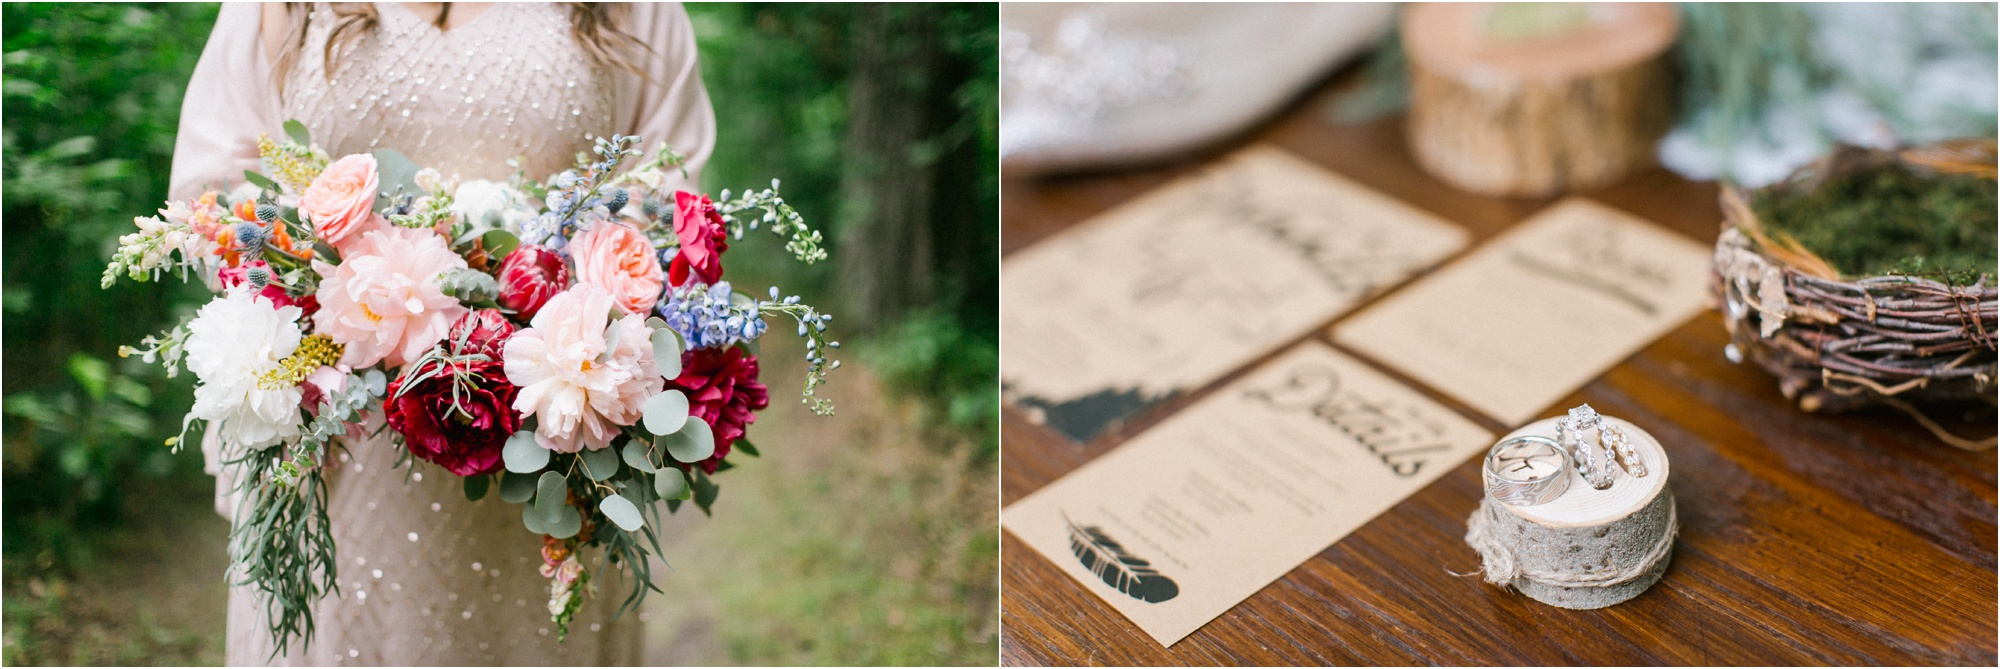 Wedding Photography Brainerd MN Aimee Jobe Photography Private Lake Residence Bloom Designs_0003.jpg